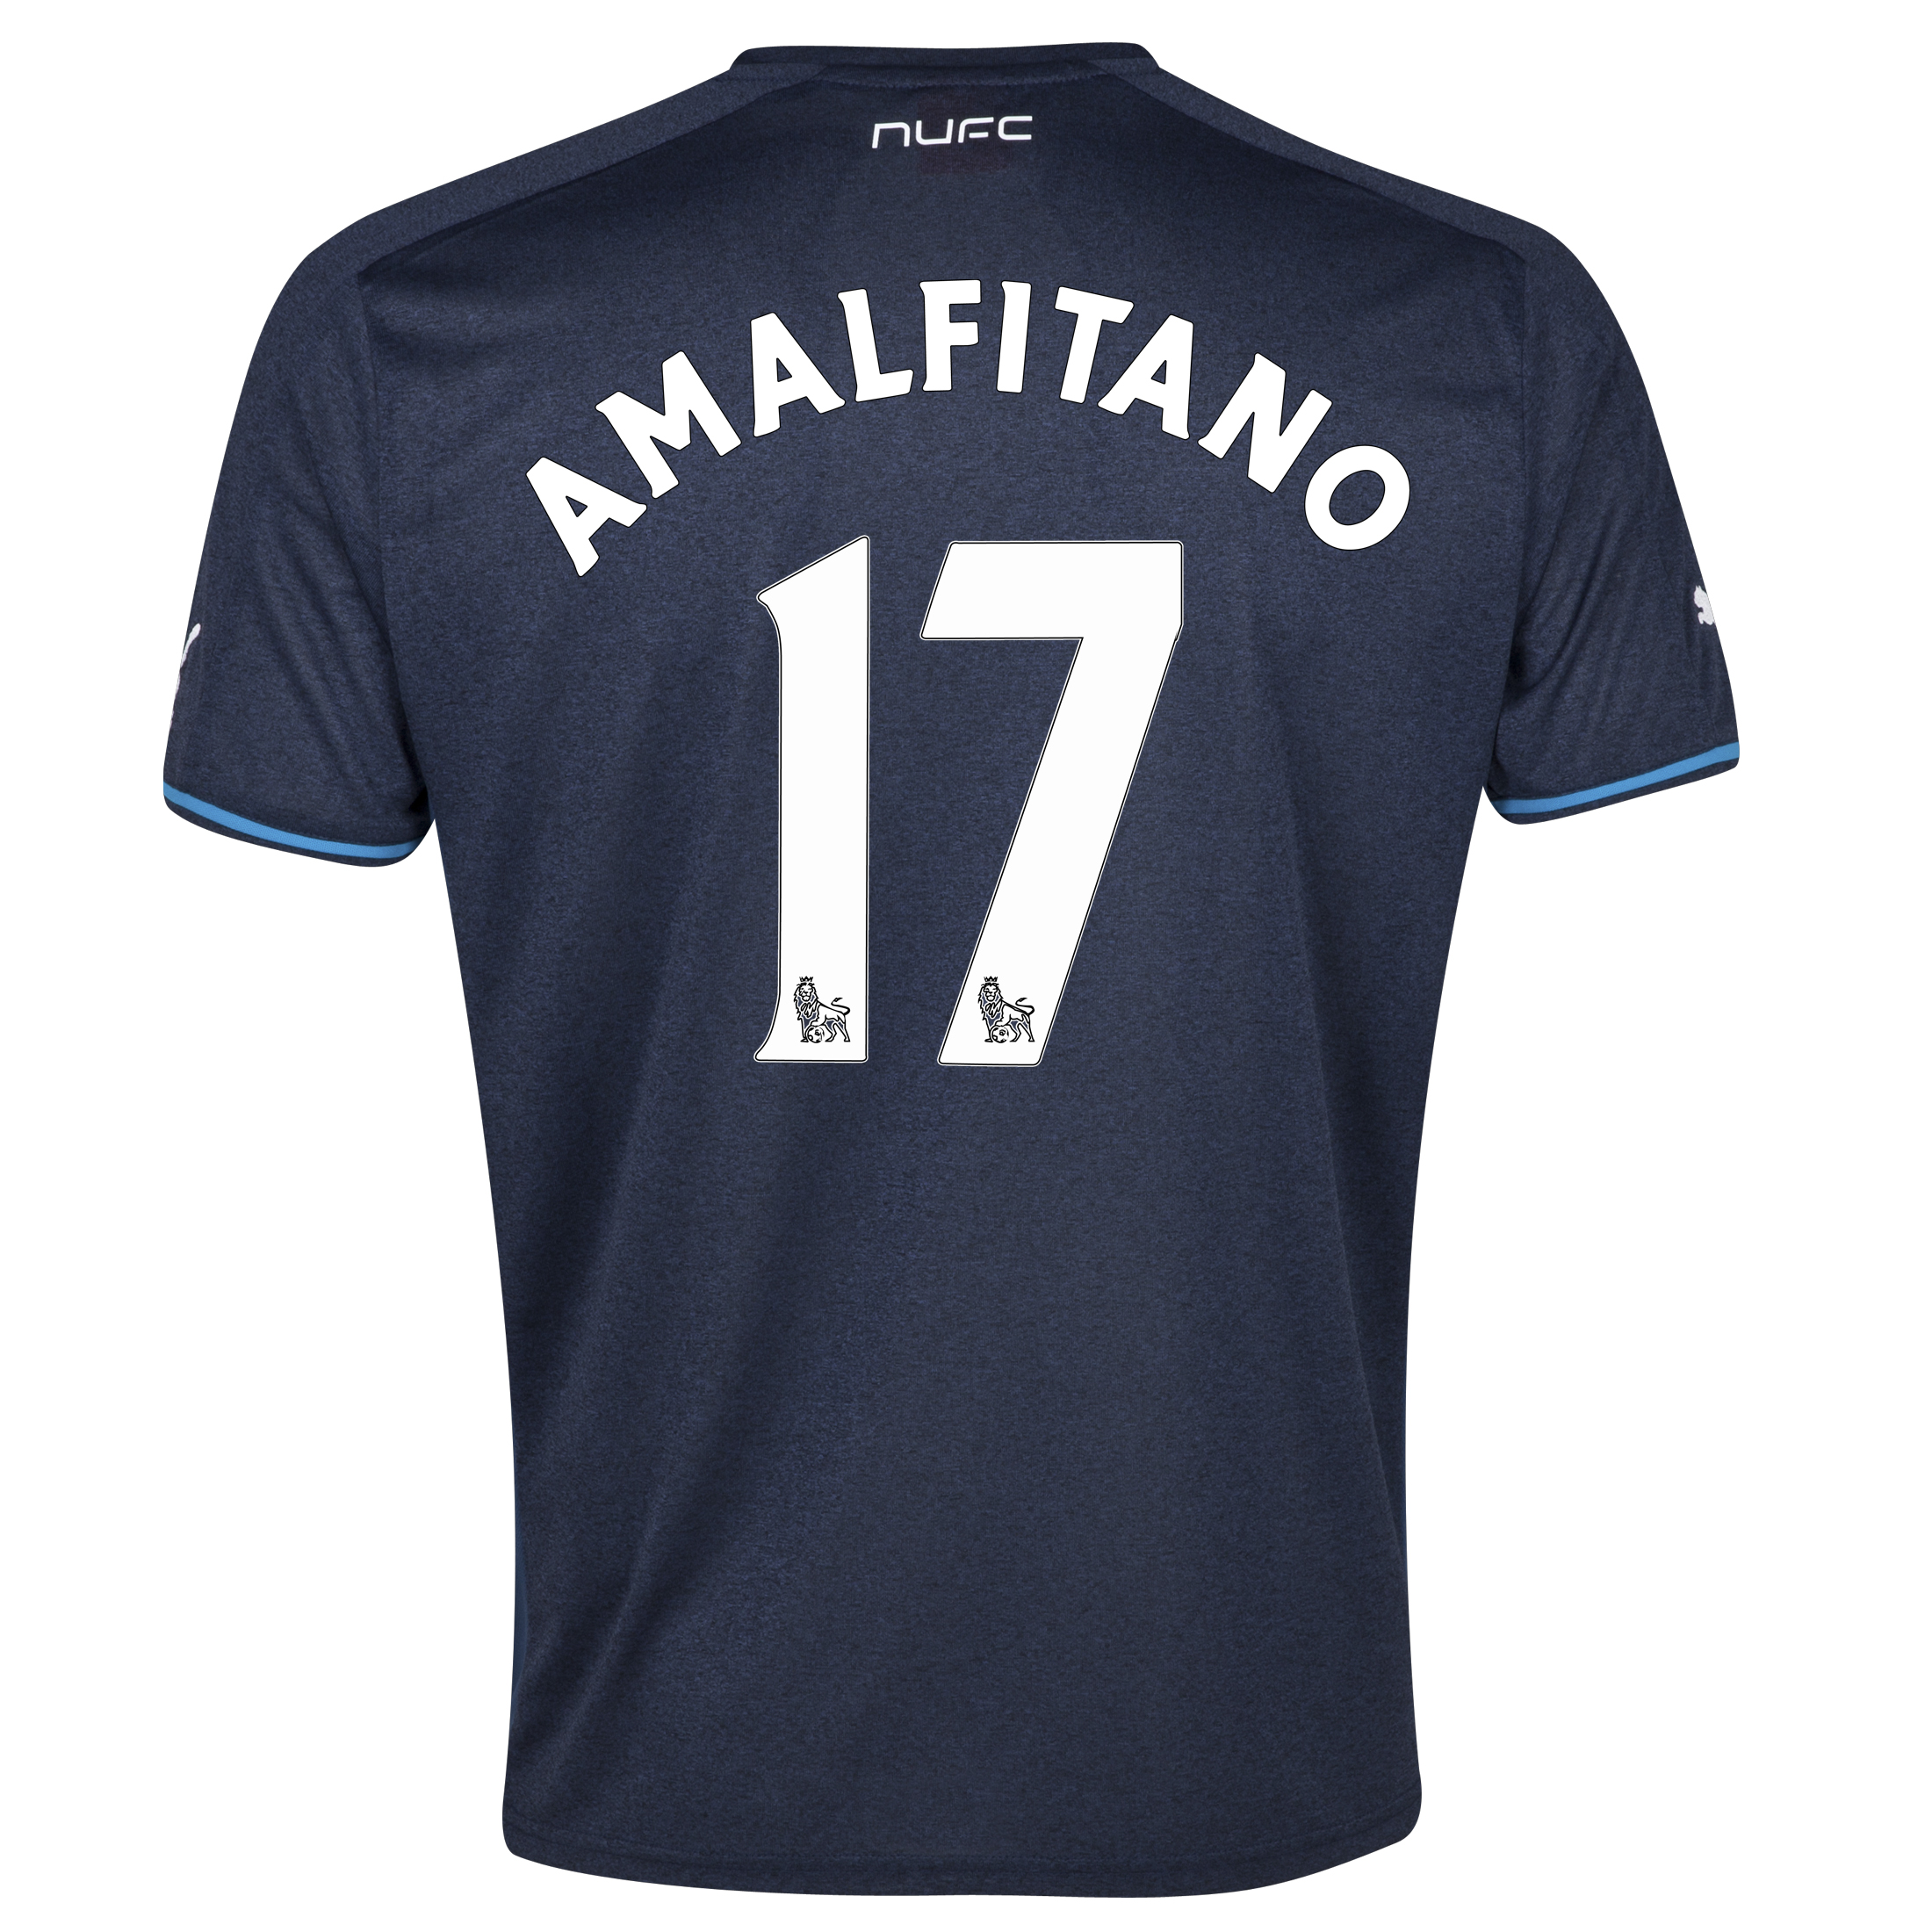 Newcastle United Away Shirt 2013/14 - kids with Amalfitano 17 printing